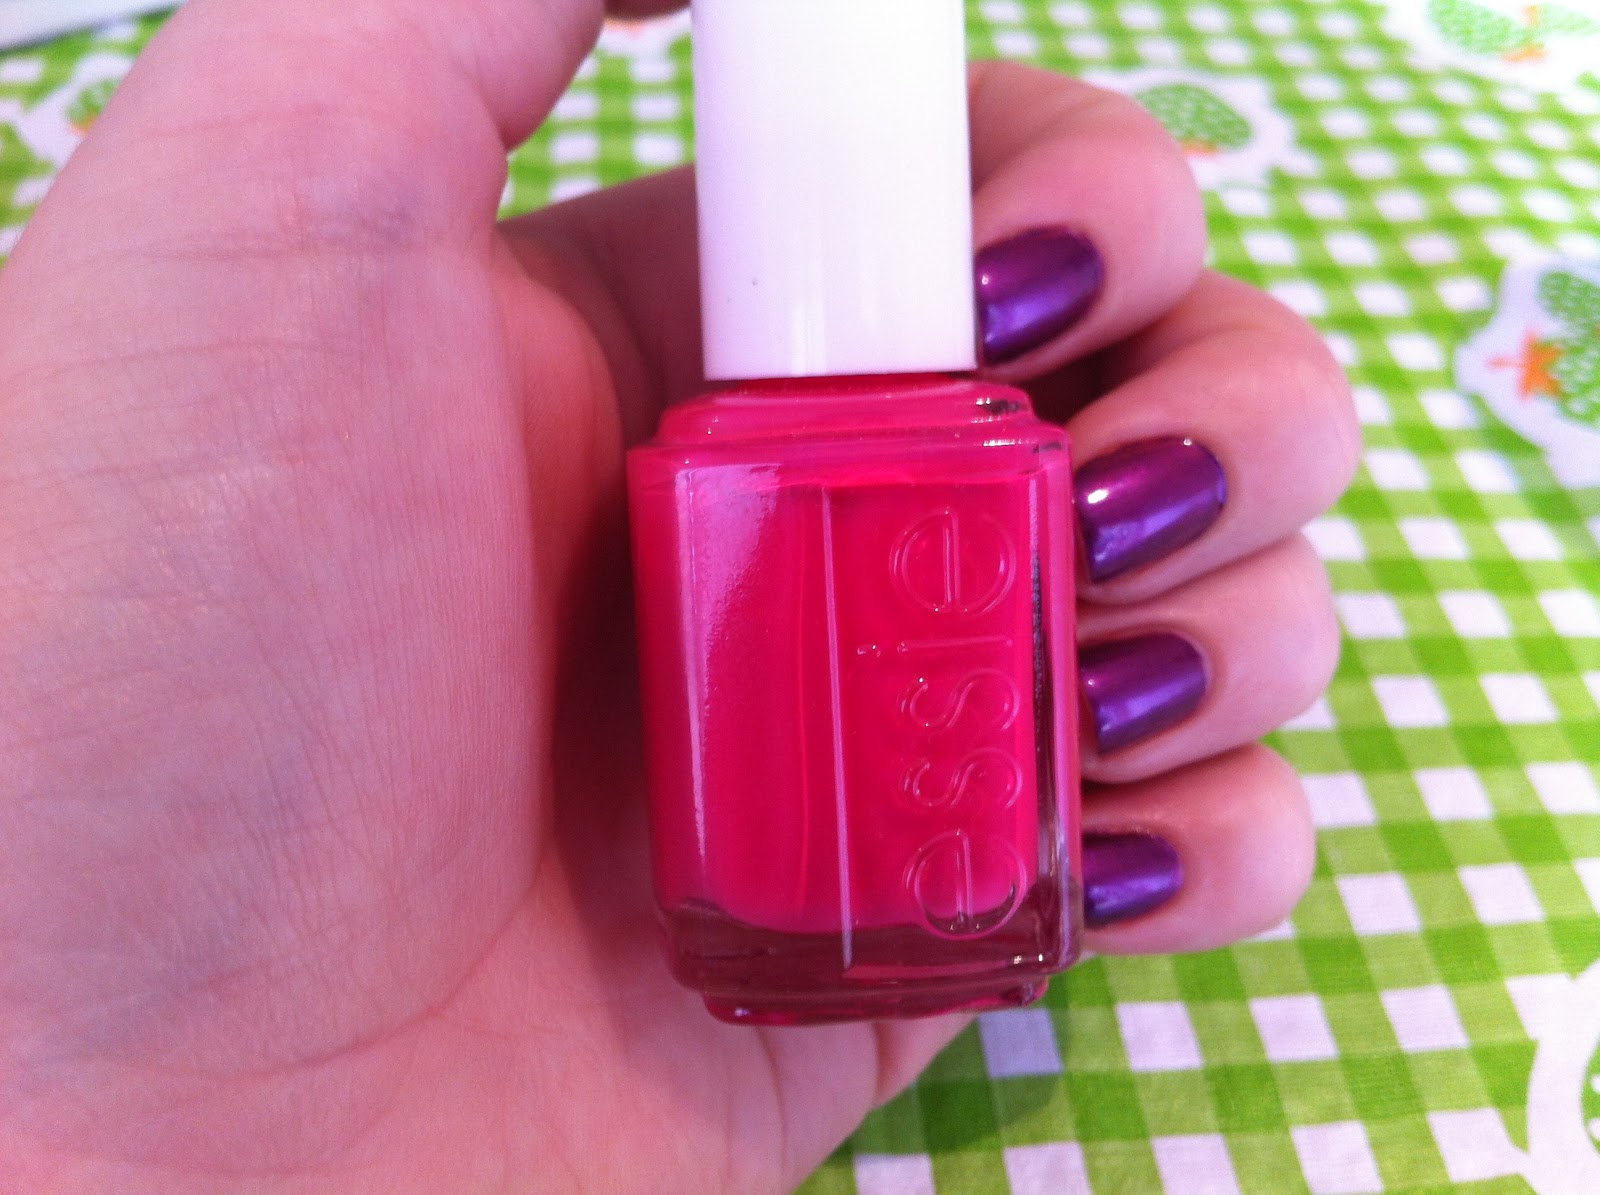 Yakatey Yak: Nail Care and Prep for a Top Manicure